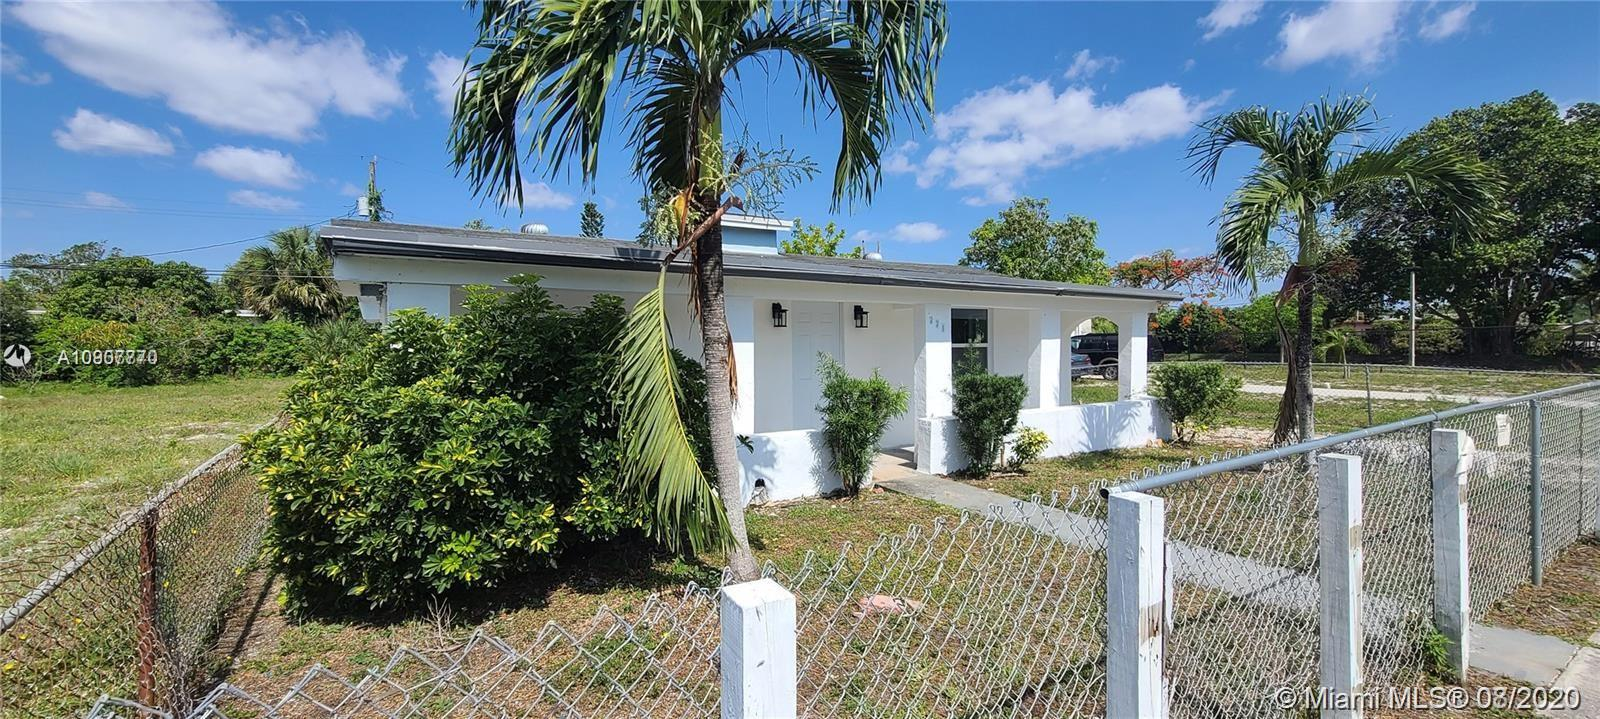 221 NW 28th Way  For Sale A10907770, FL